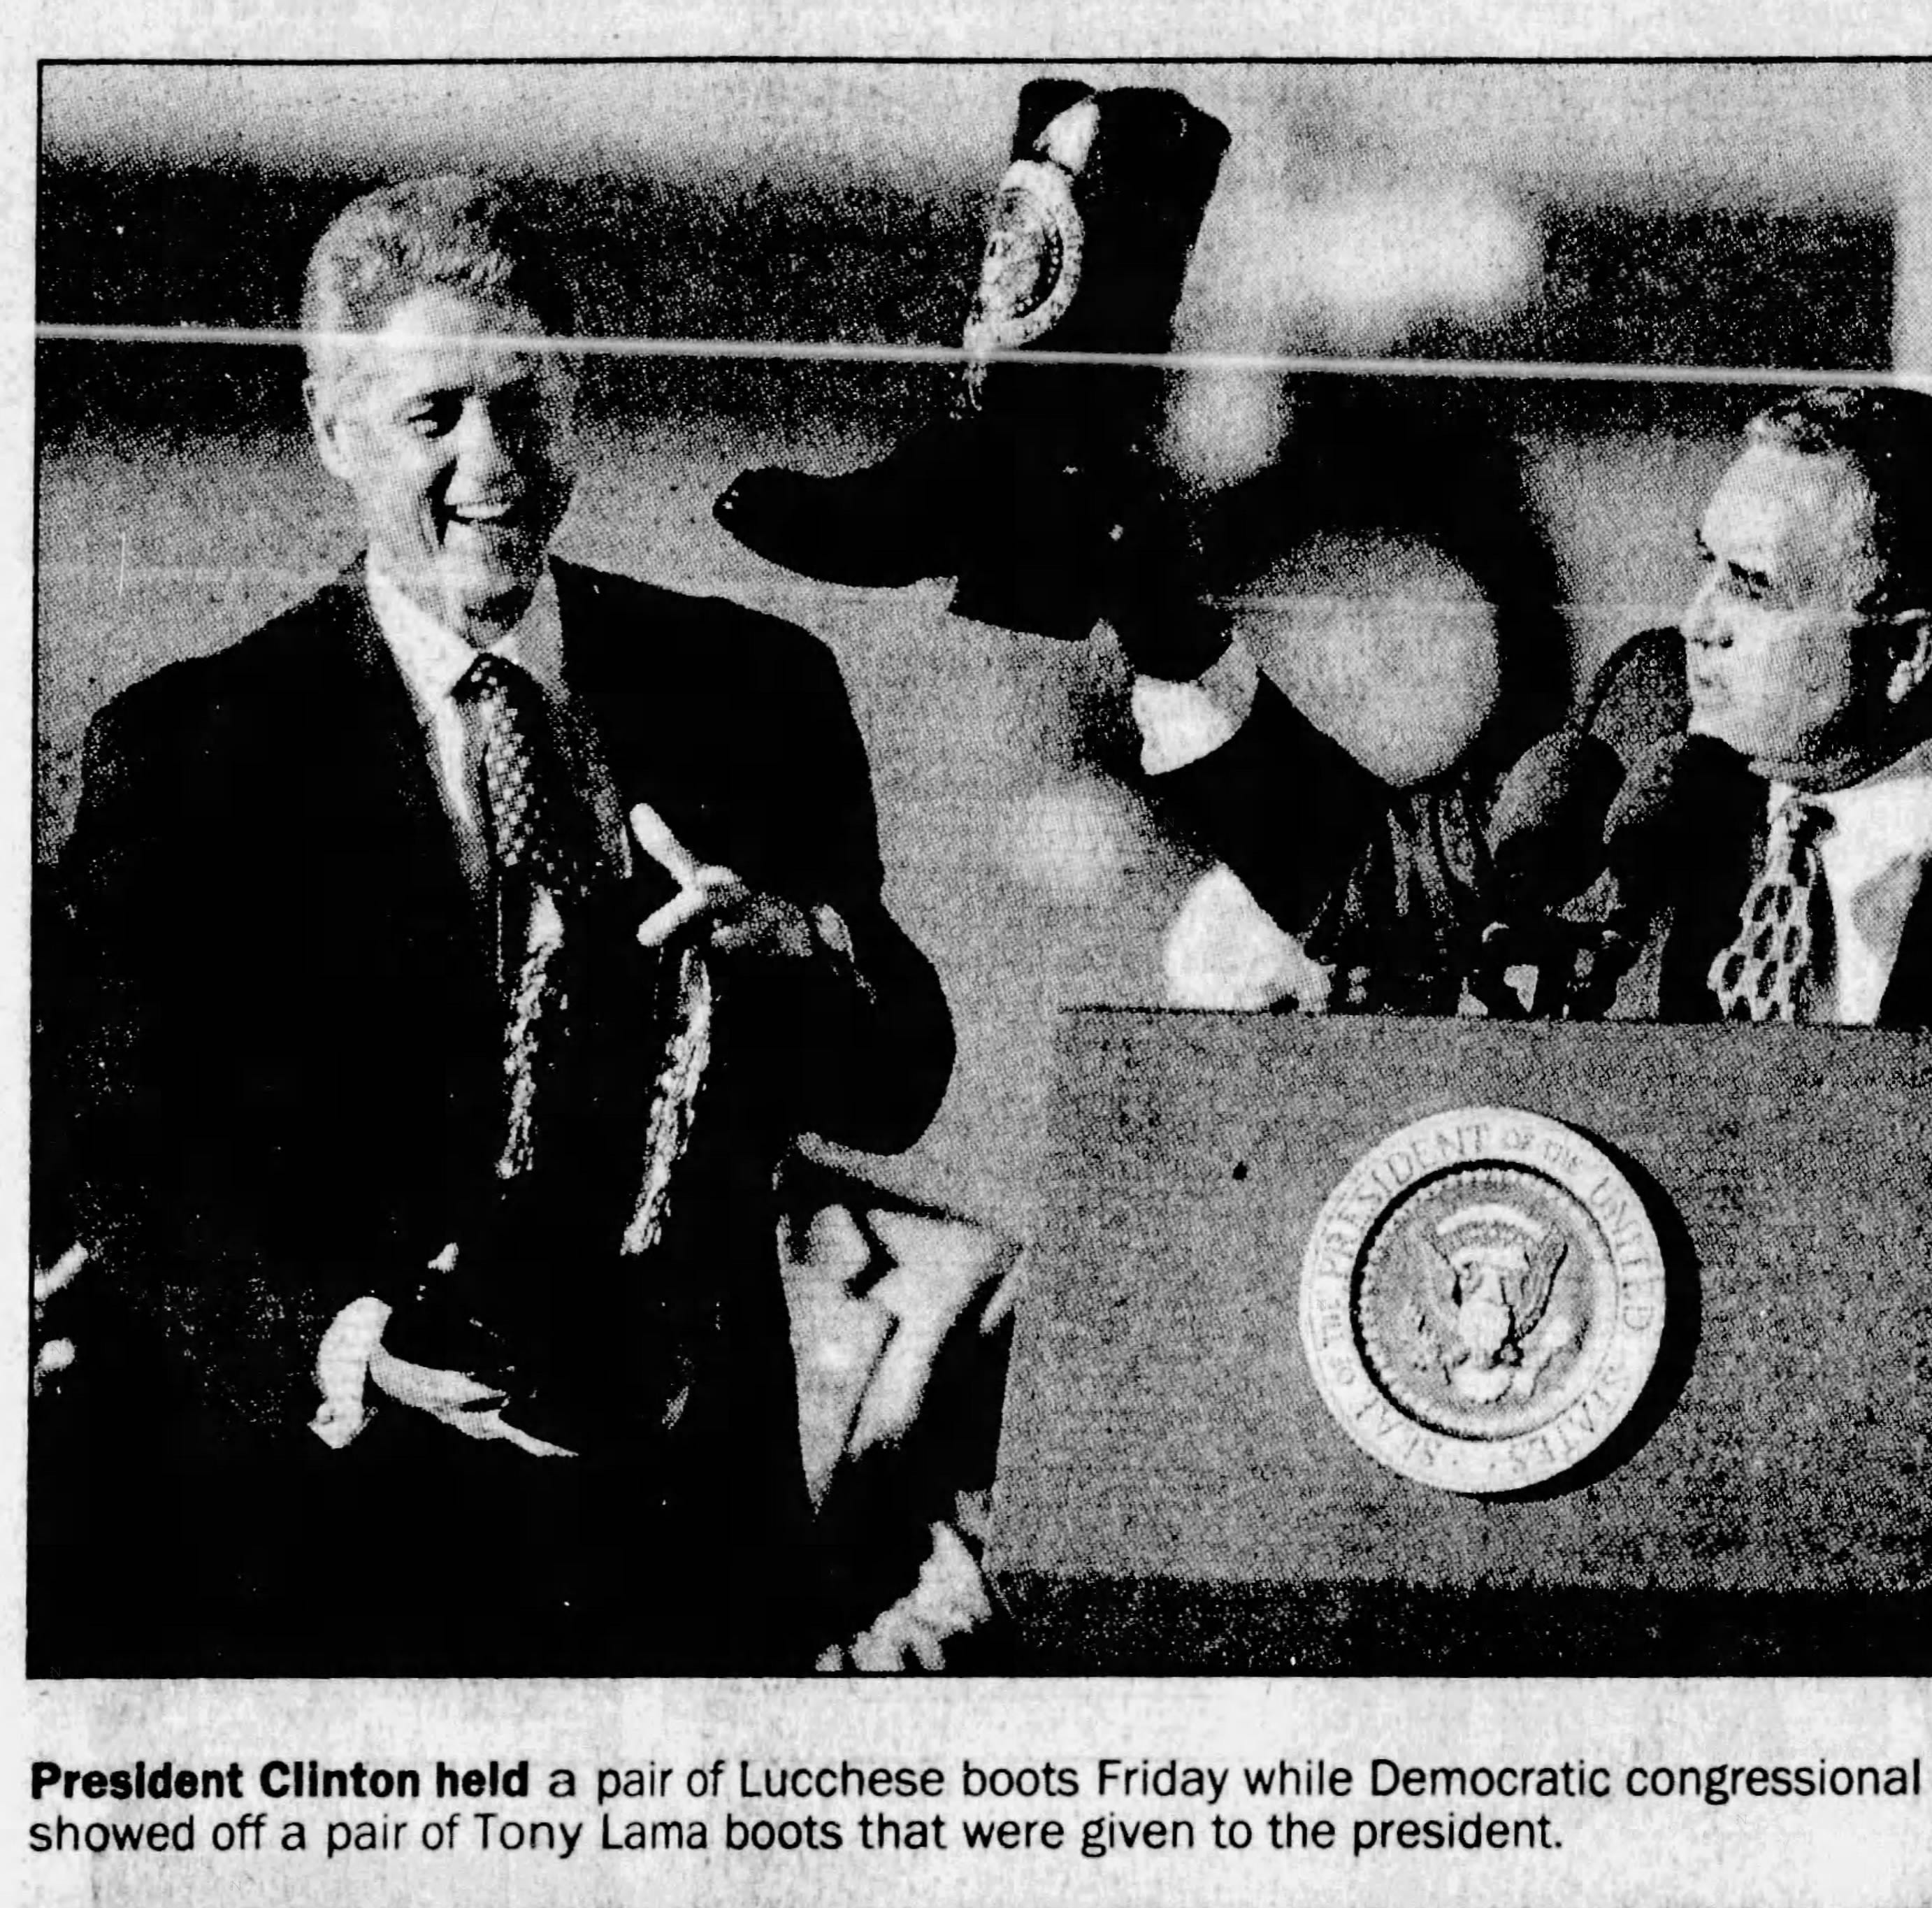 Past presidential visits: Bill Clinton in 1996